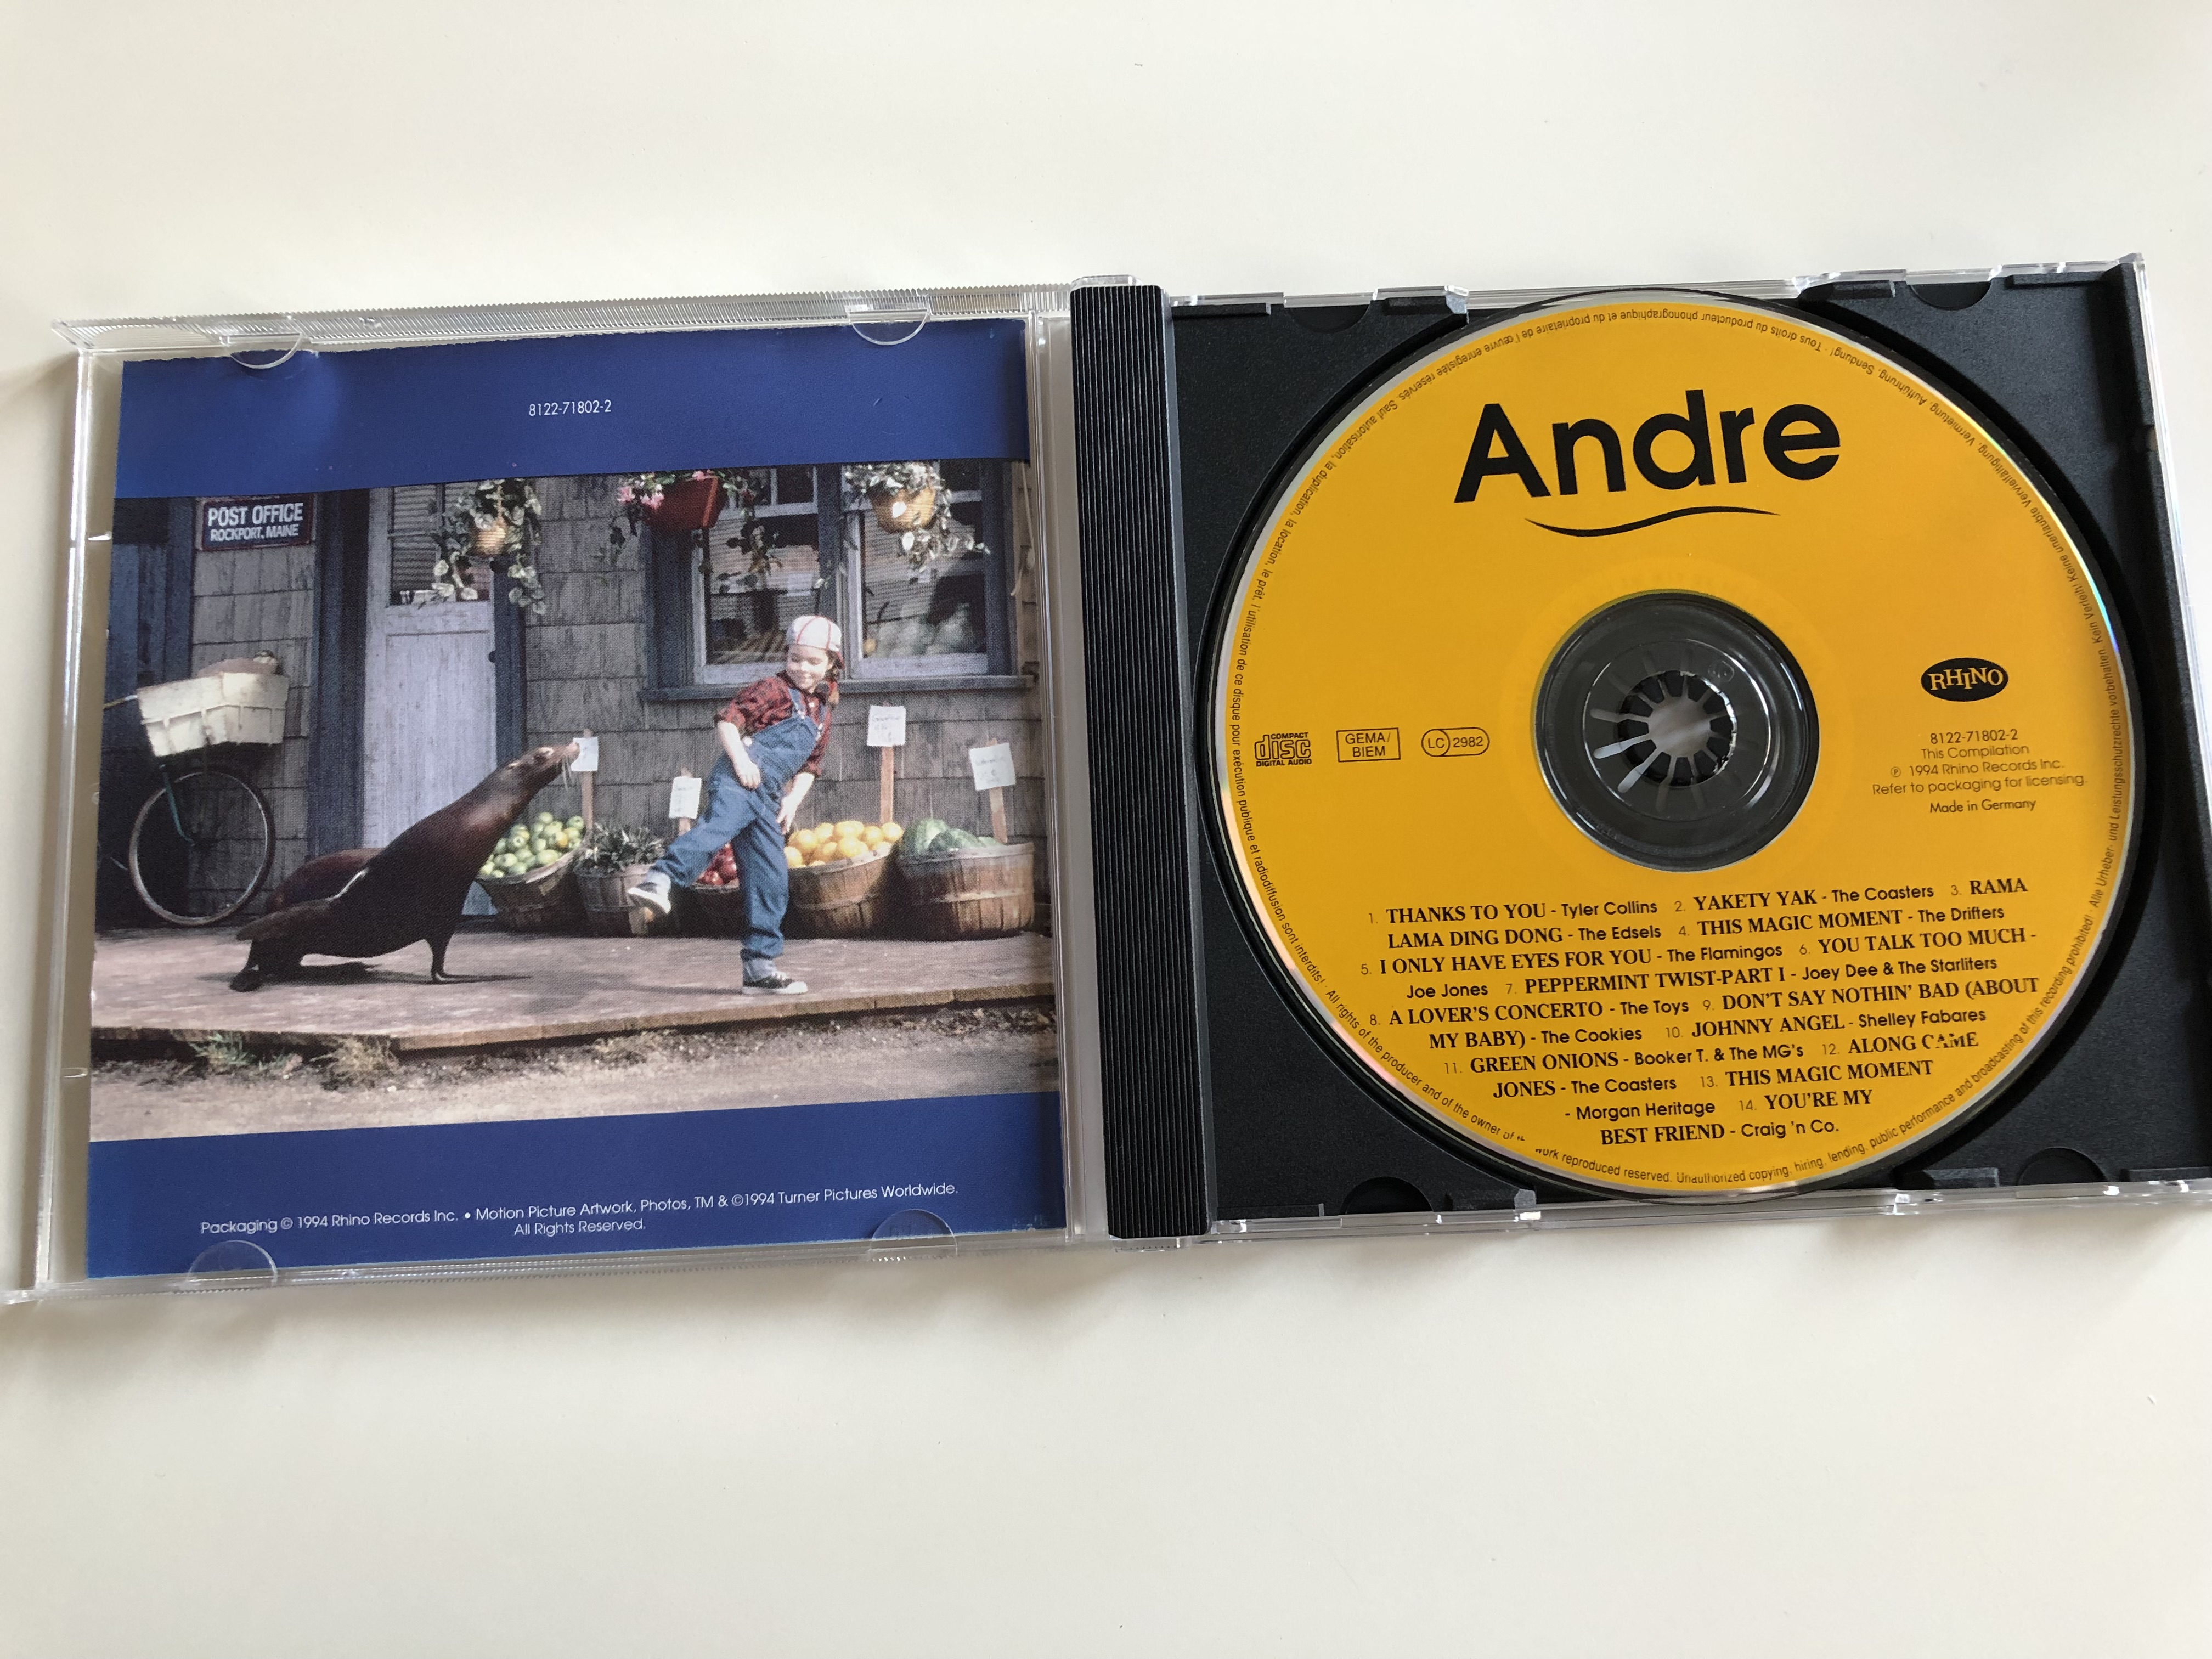 andre-based-on-a-true-story-songs-from-the-original-soundtrack-the-greatest-adventure-is-finding-your-way-home-audio-cd-1994-8122-71802-2-ca-851-5-.jpg